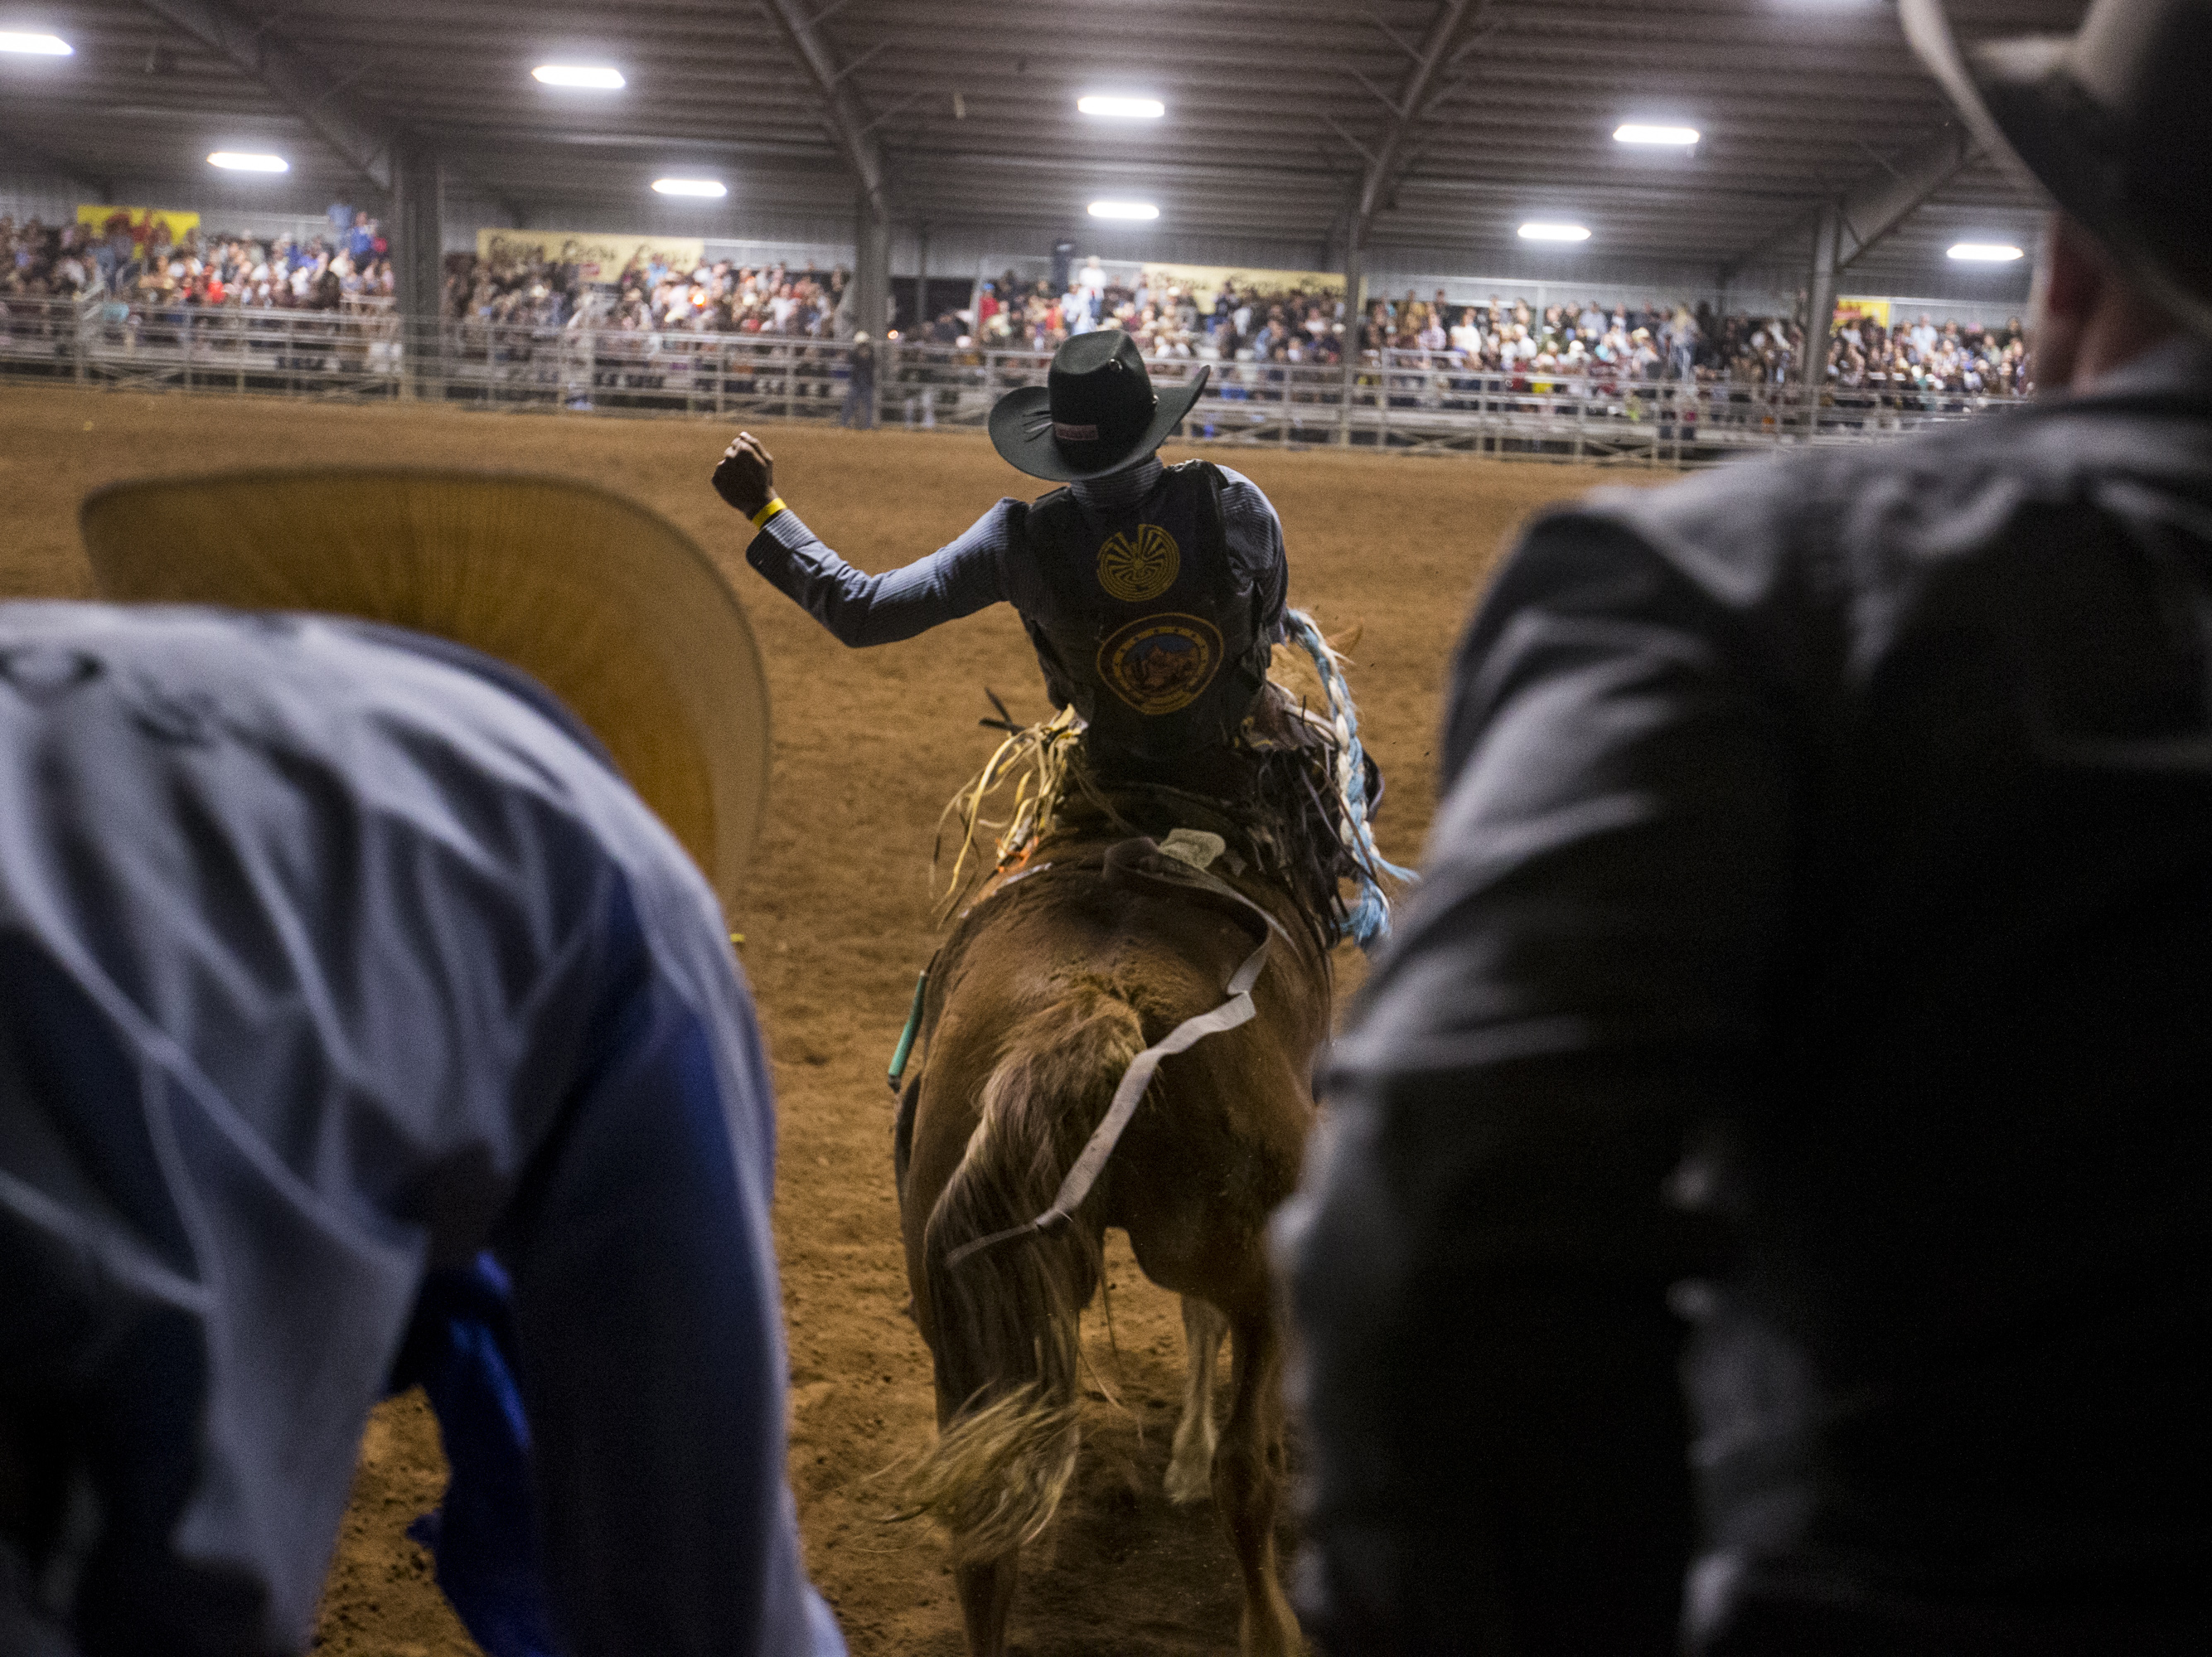 Jalen Joaquin rides a bronco during the Gilbert Days Rodeo on Saturday, Nov. 17, 2018 in Gilbert, Ariz.